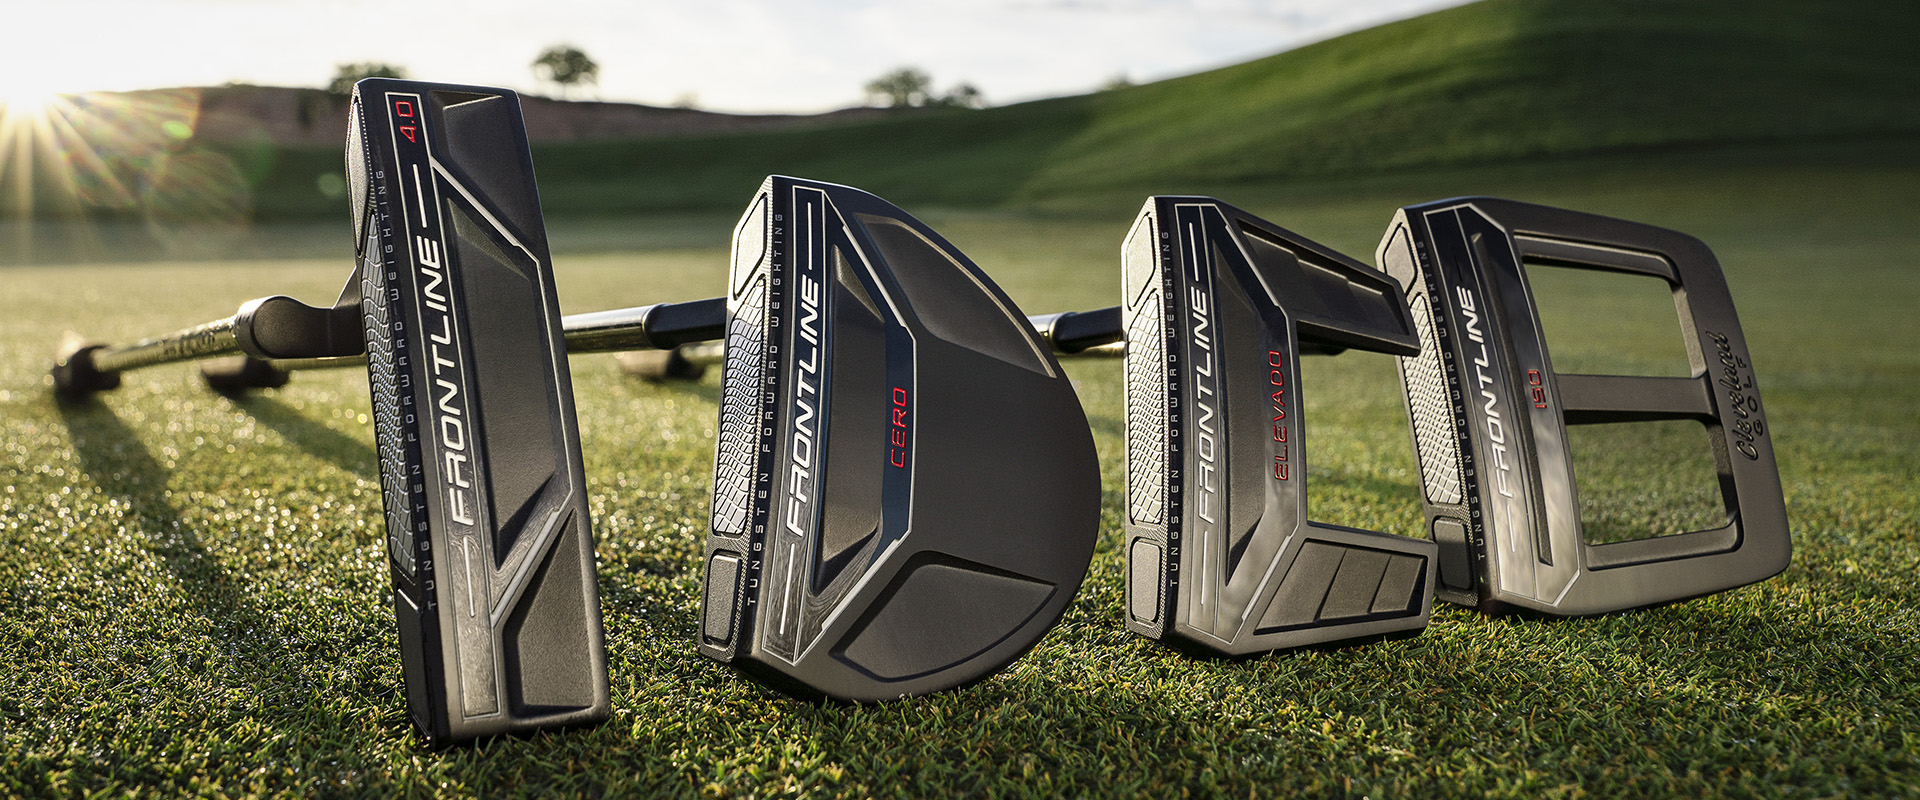 TRY BEFORE YOU BUY | DEMO FRONTLINE PUTTERS AT HOME